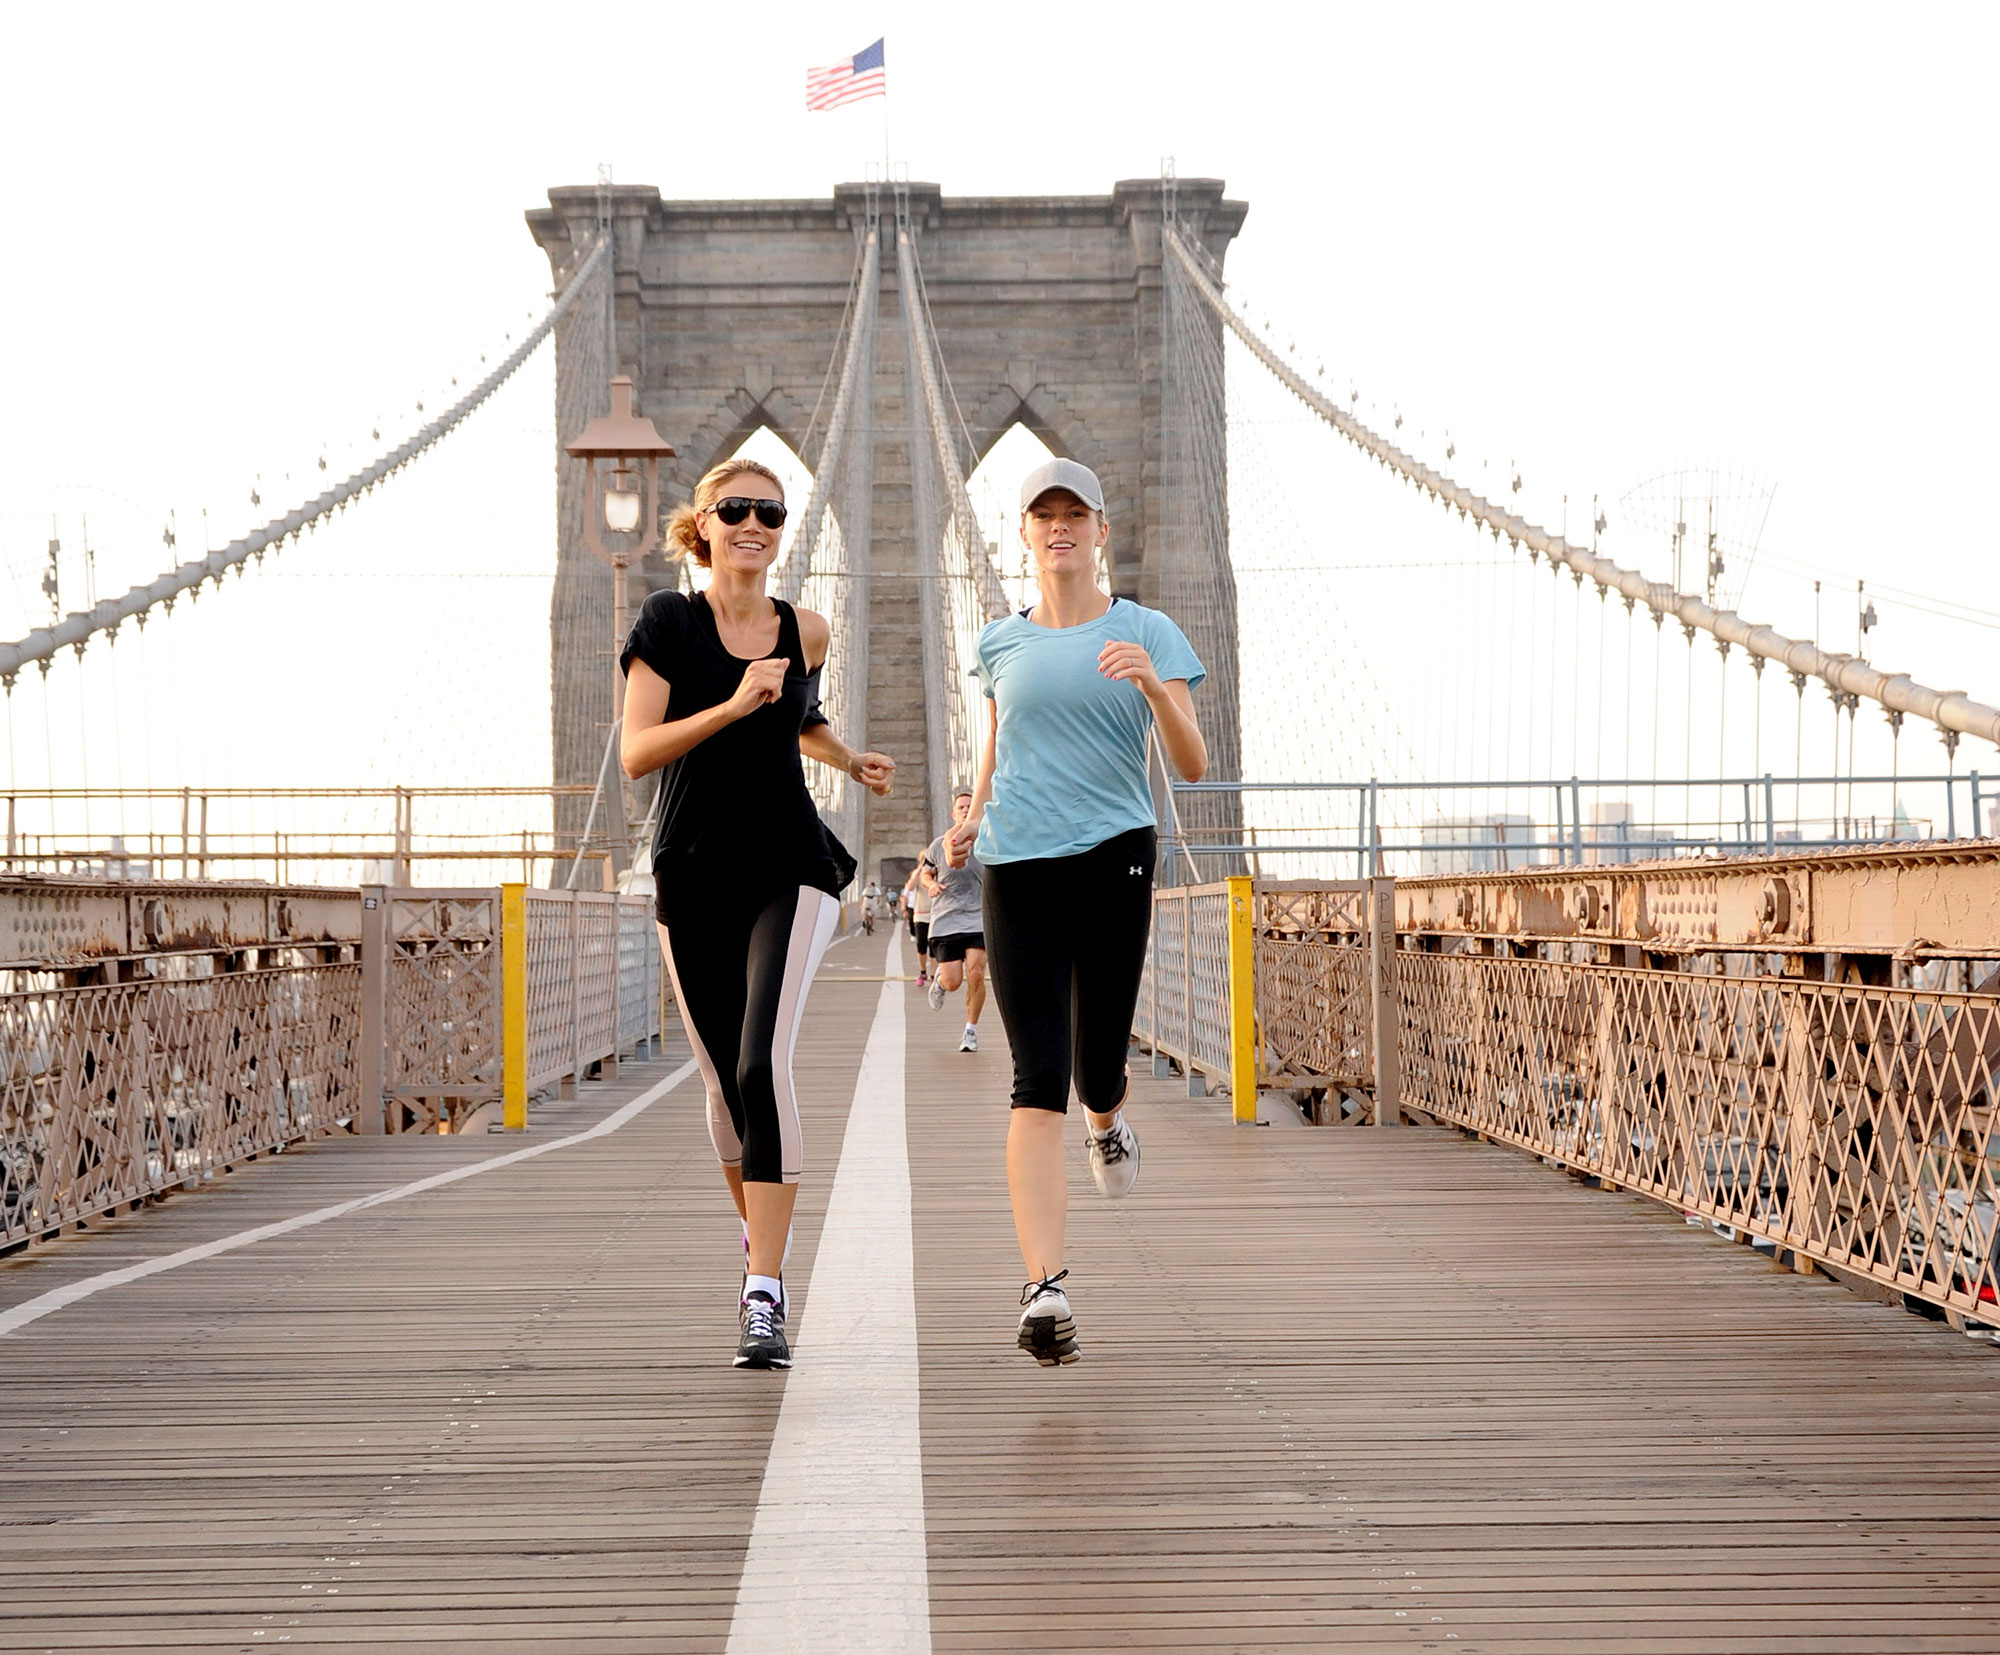 Brooklyn Decker Heidi Klum Celebrity Joggers - NEW YORK, NY – JULY 12: (EXCLUSIVE COVERAGE) Brooklyn Decker joins Heidi Klum on her AOL summer run across the Brooklyn Bridge on July 12, 2011 in New York City. (Photo by Kevin Mazur/WireImage)